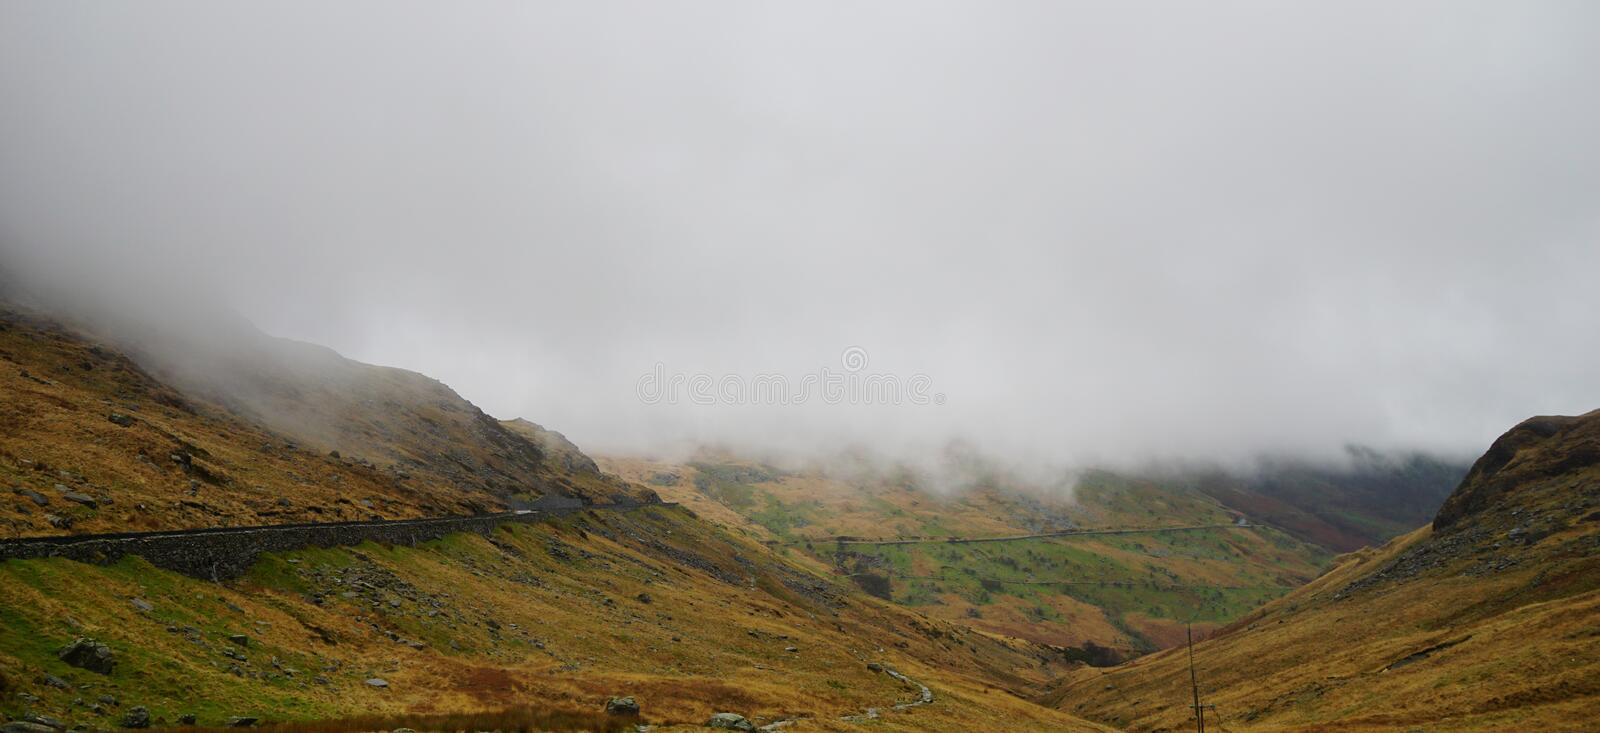 Stunning Mountains in Snowdon, Wales, United Kingdom. Stunning landscape with foggy and moody skies among the mountains, covered with beautiful snow – royalty free stock image